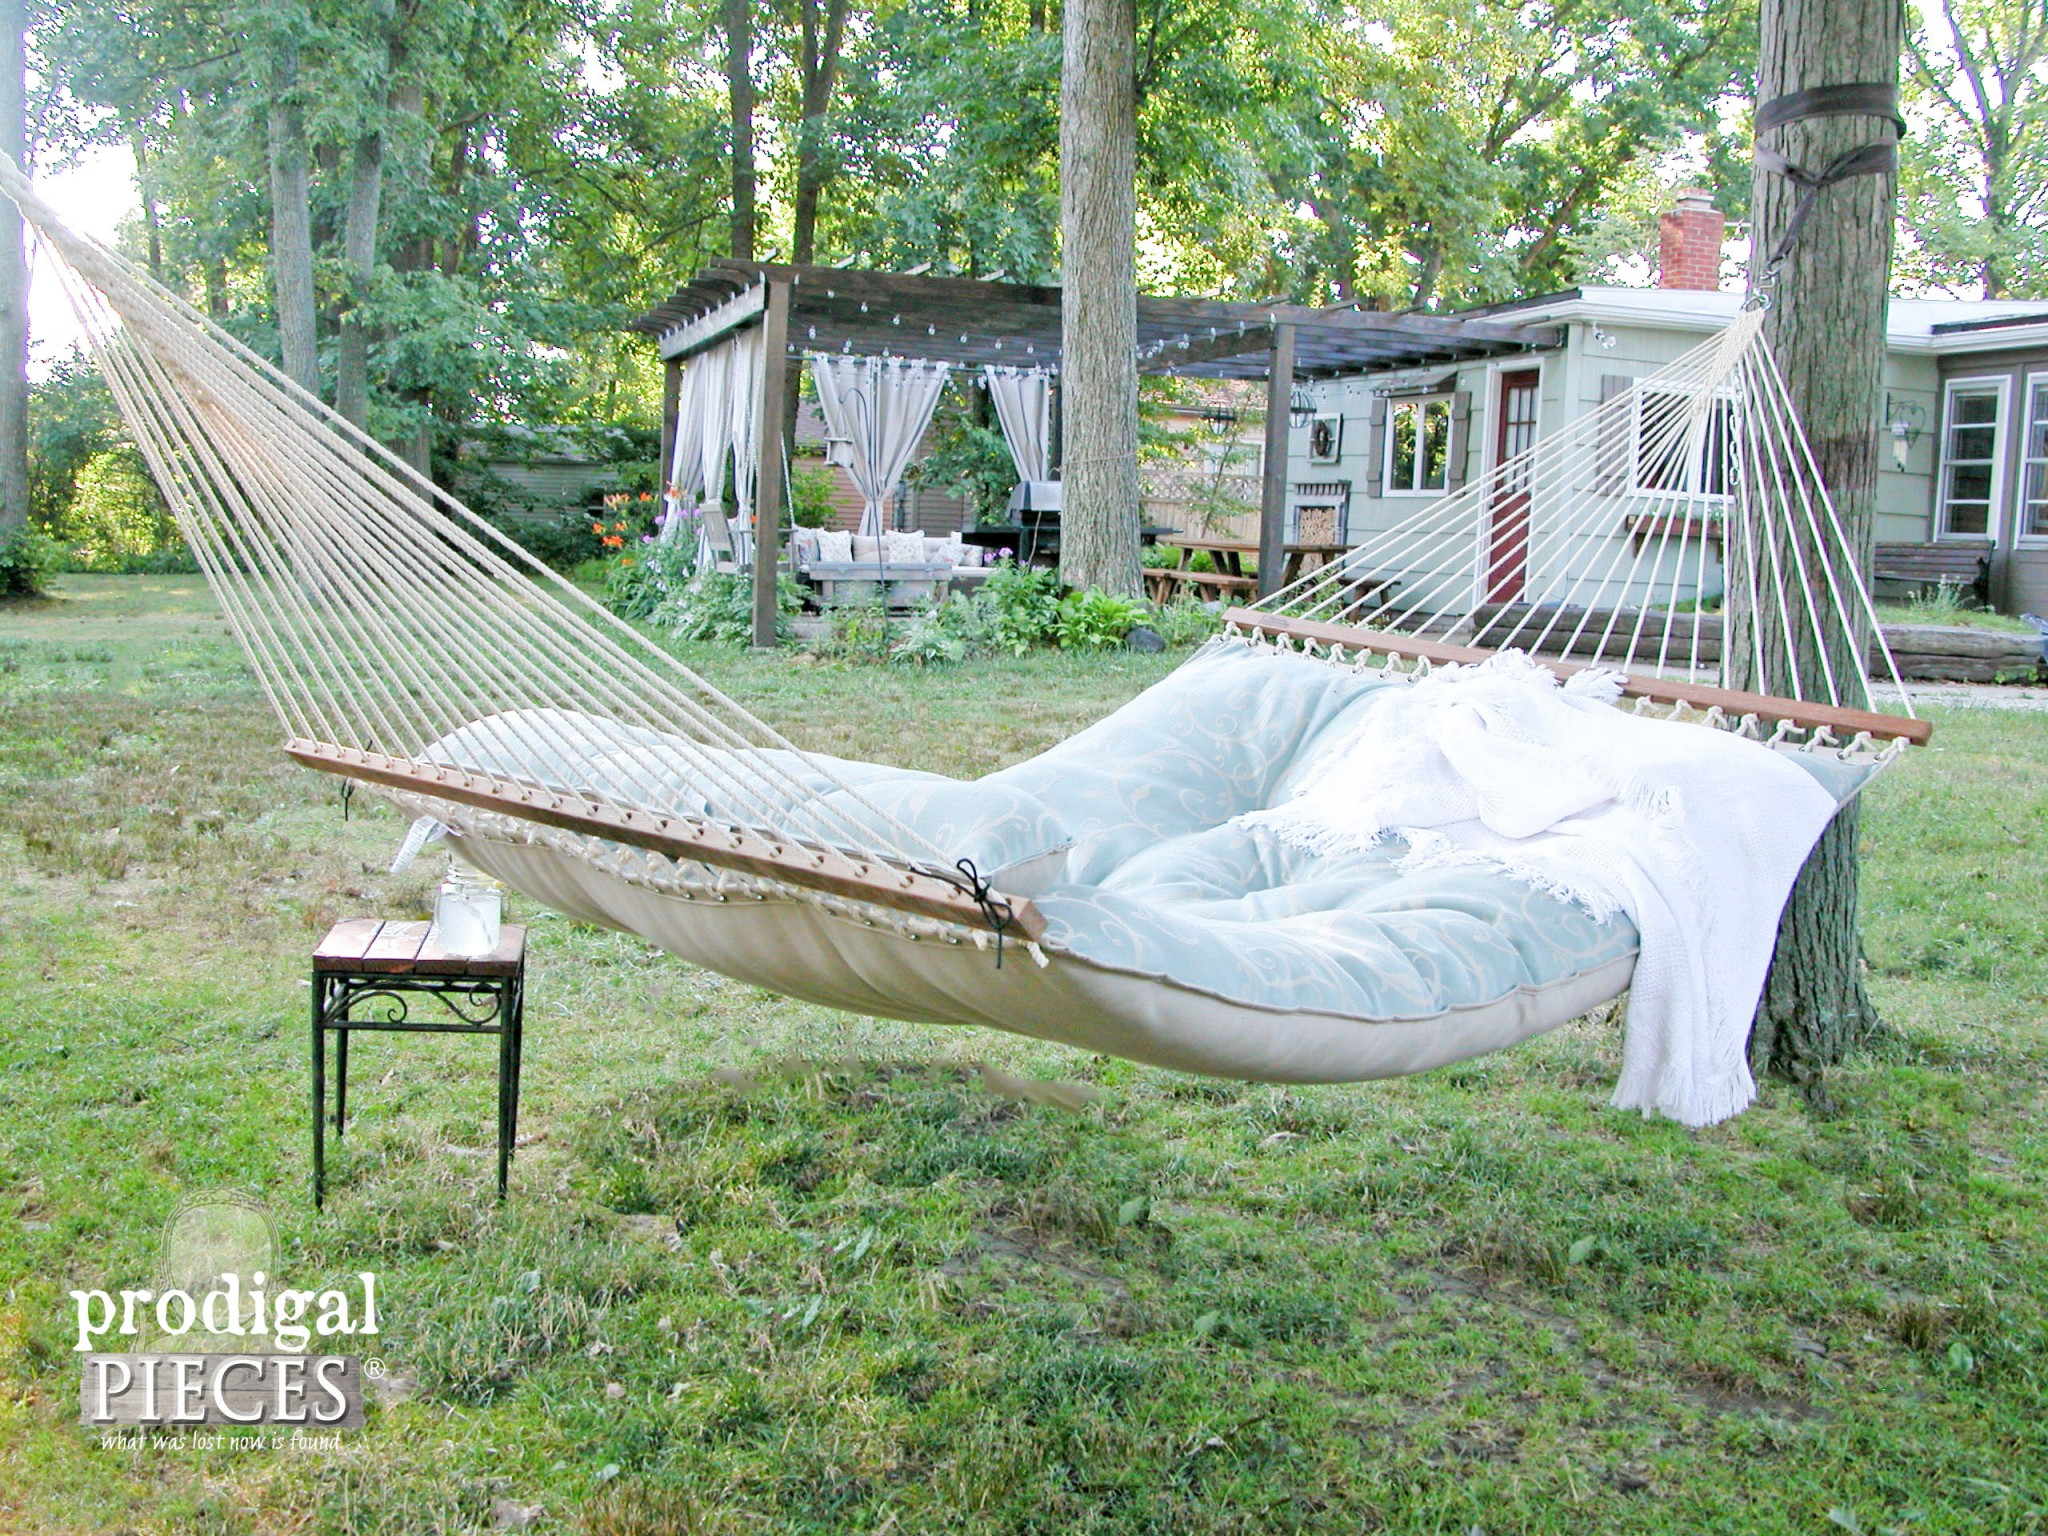 Tufted Hammock by Hatteras Hammocks on DFO Home by Prodigal Pieces | www.prodigalpieces.com